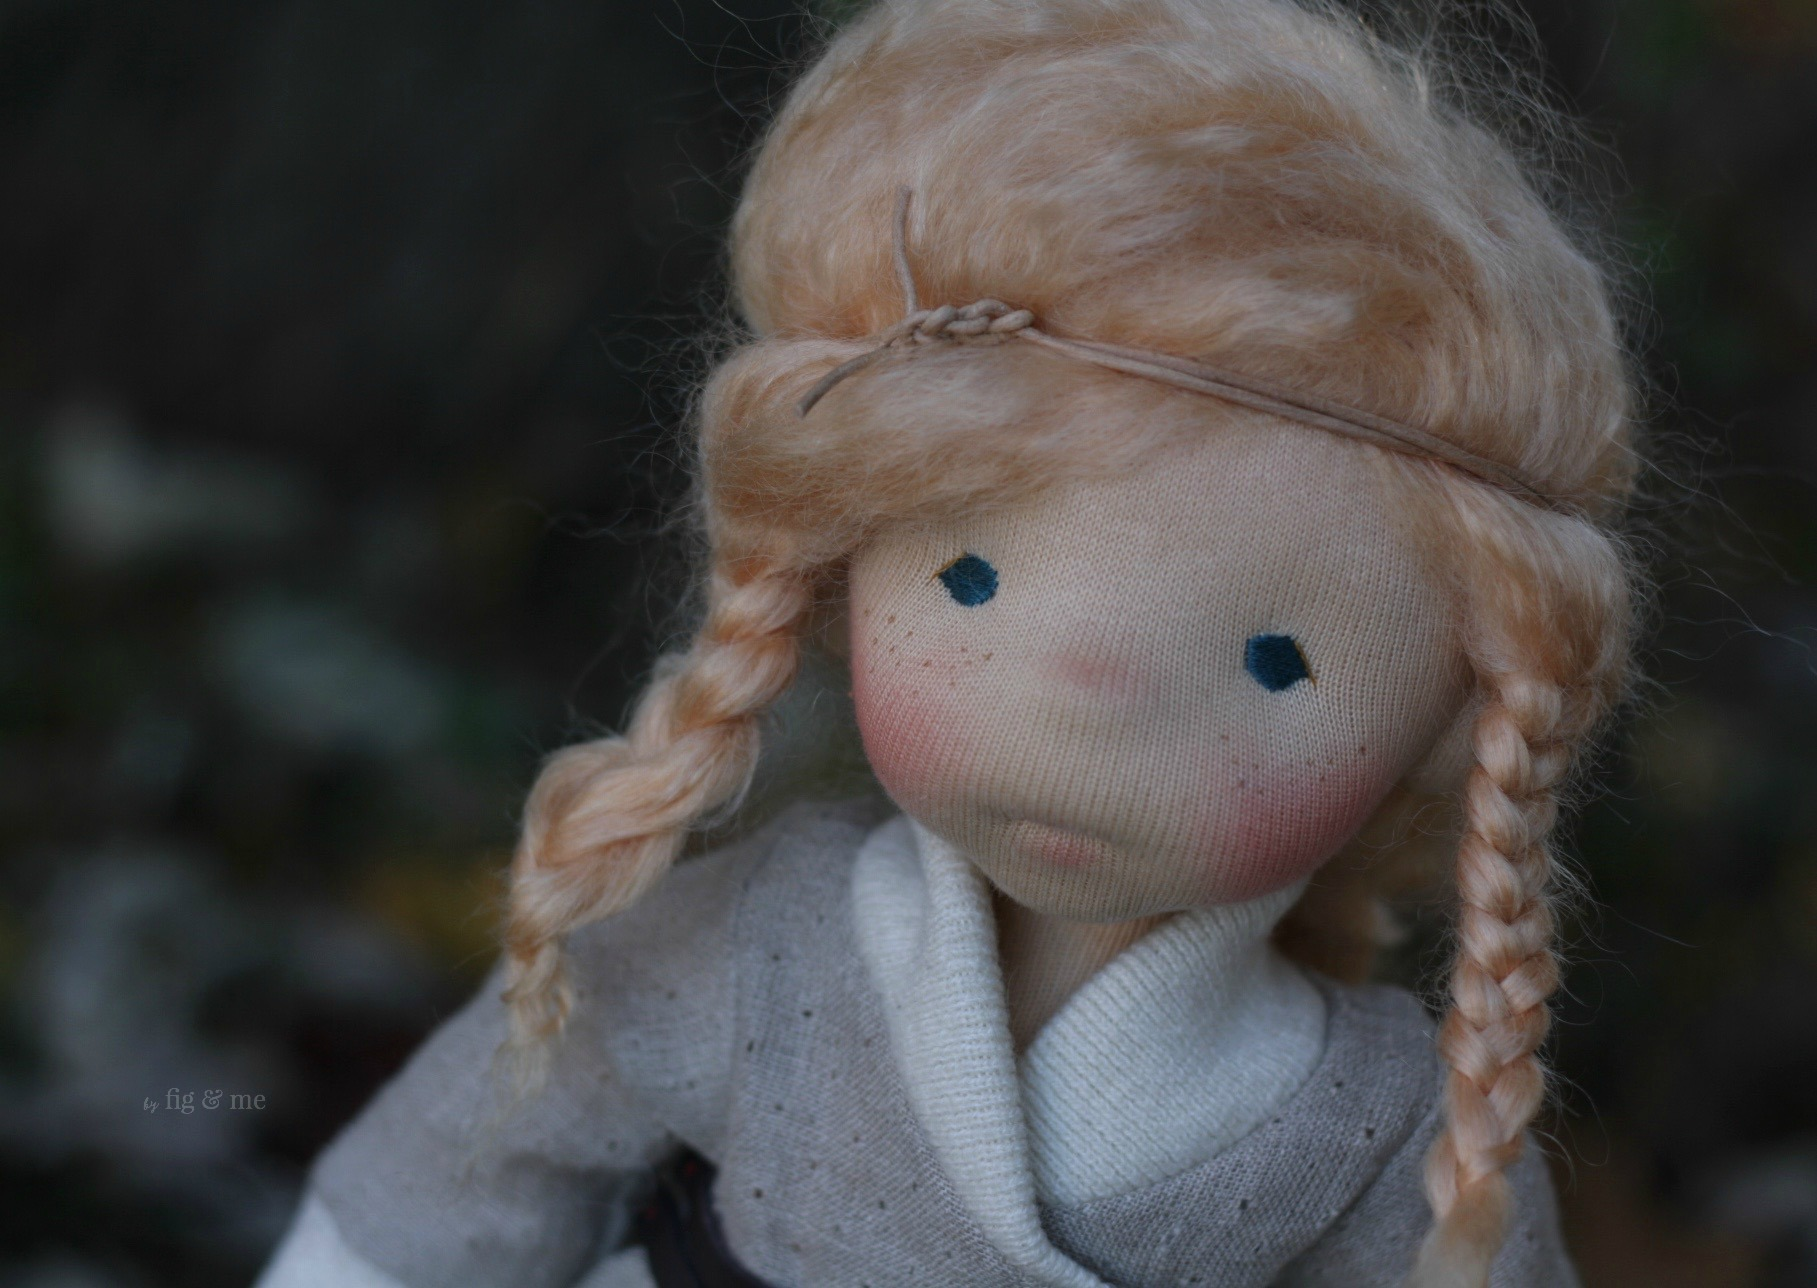 Iona with her lovely freckles and impish eyes, a natural fiber art doll by Fig and me.